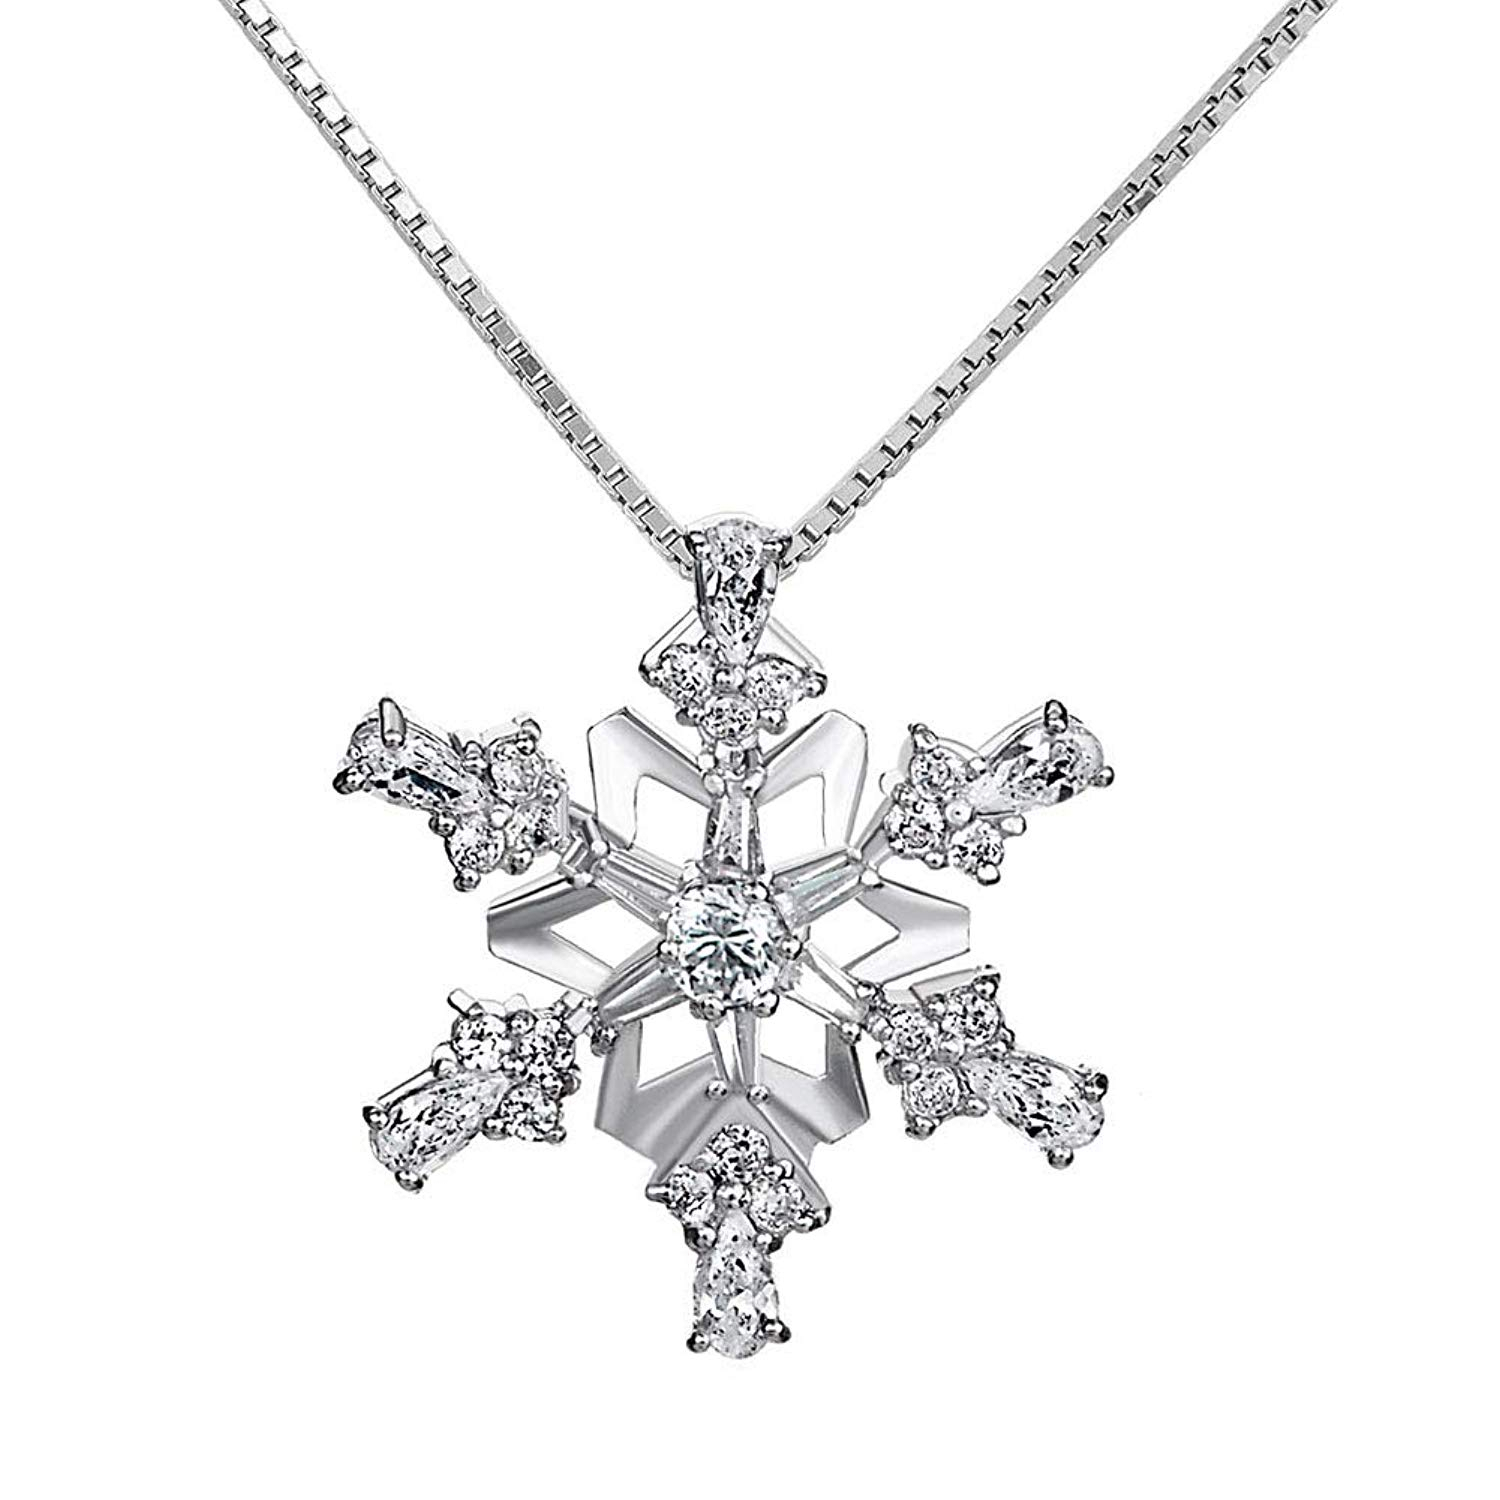 Snowflake Cz 925 Sterling Silver Pendant Necklace Winter Mom With Most Popular Heart Of Winter Necklaces (View 19 of 25)